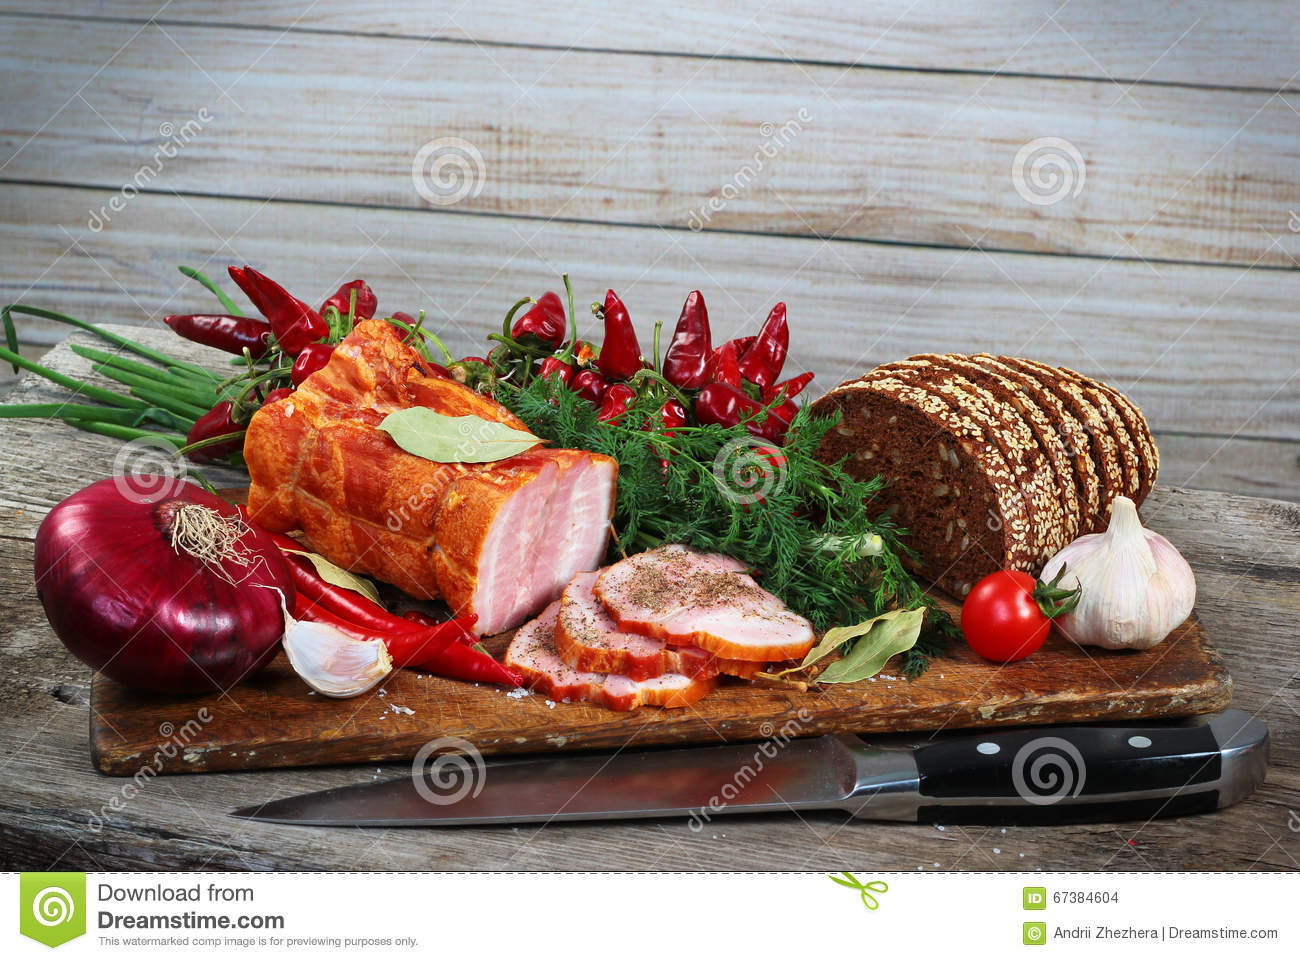 Ham and bread sliced with knife. Green and red vegetables on chopping board